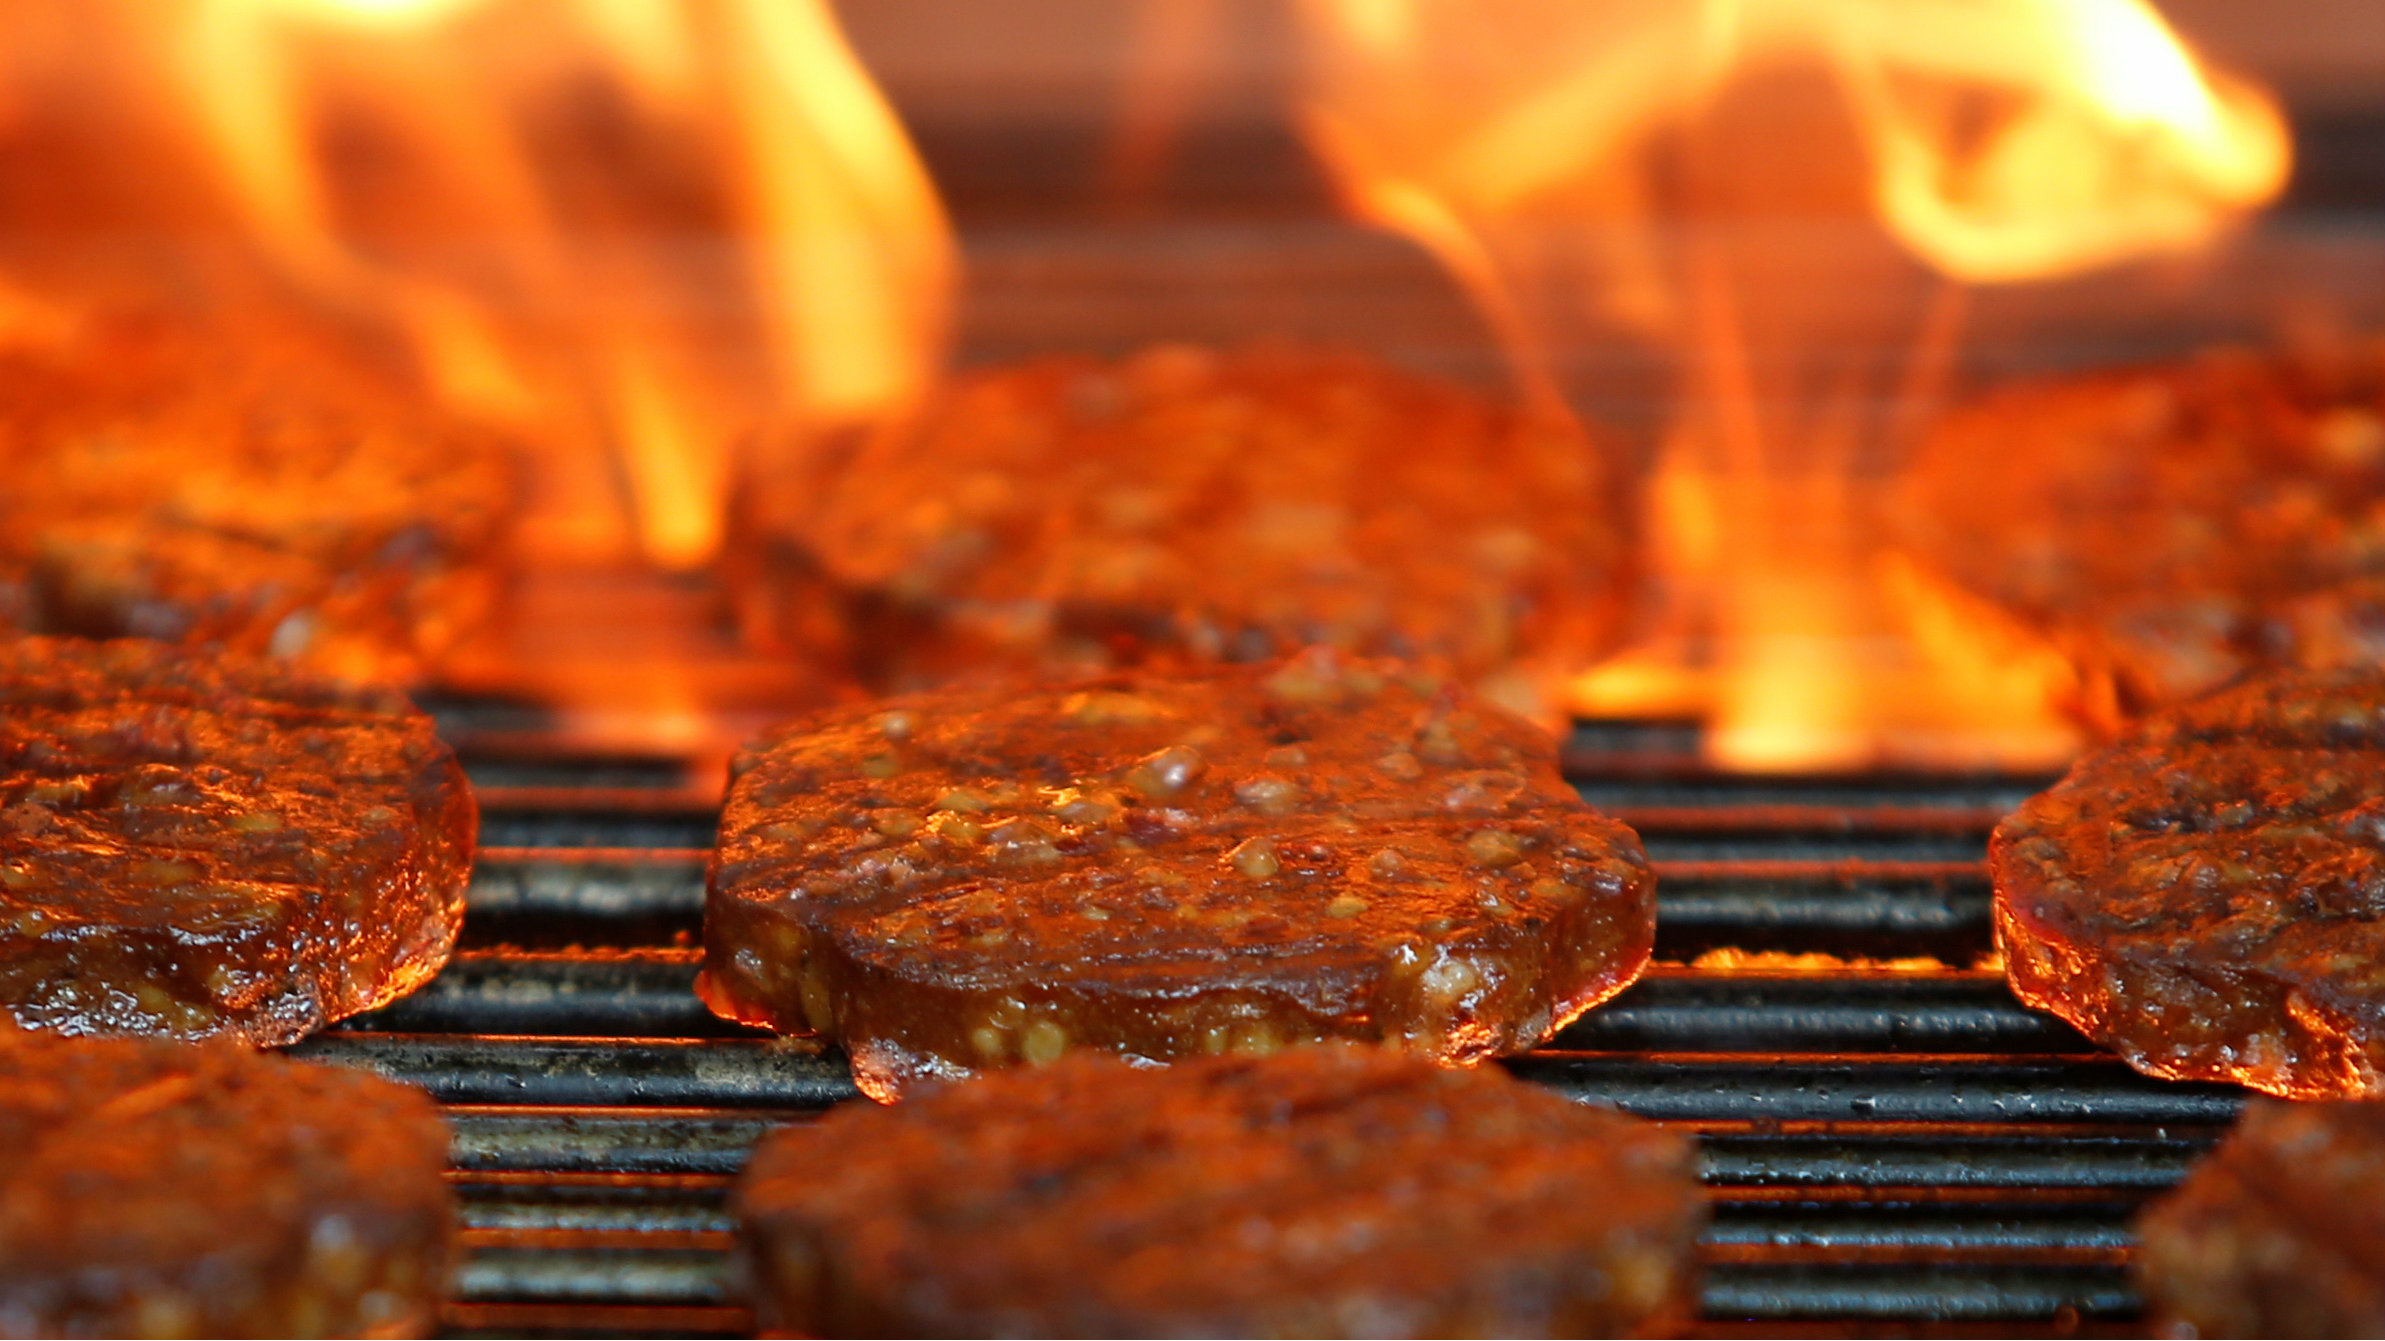 Veggie burgers are cooked over a flame on a grill in Greenwich, Connecticut, U.S., on June 26, 2017